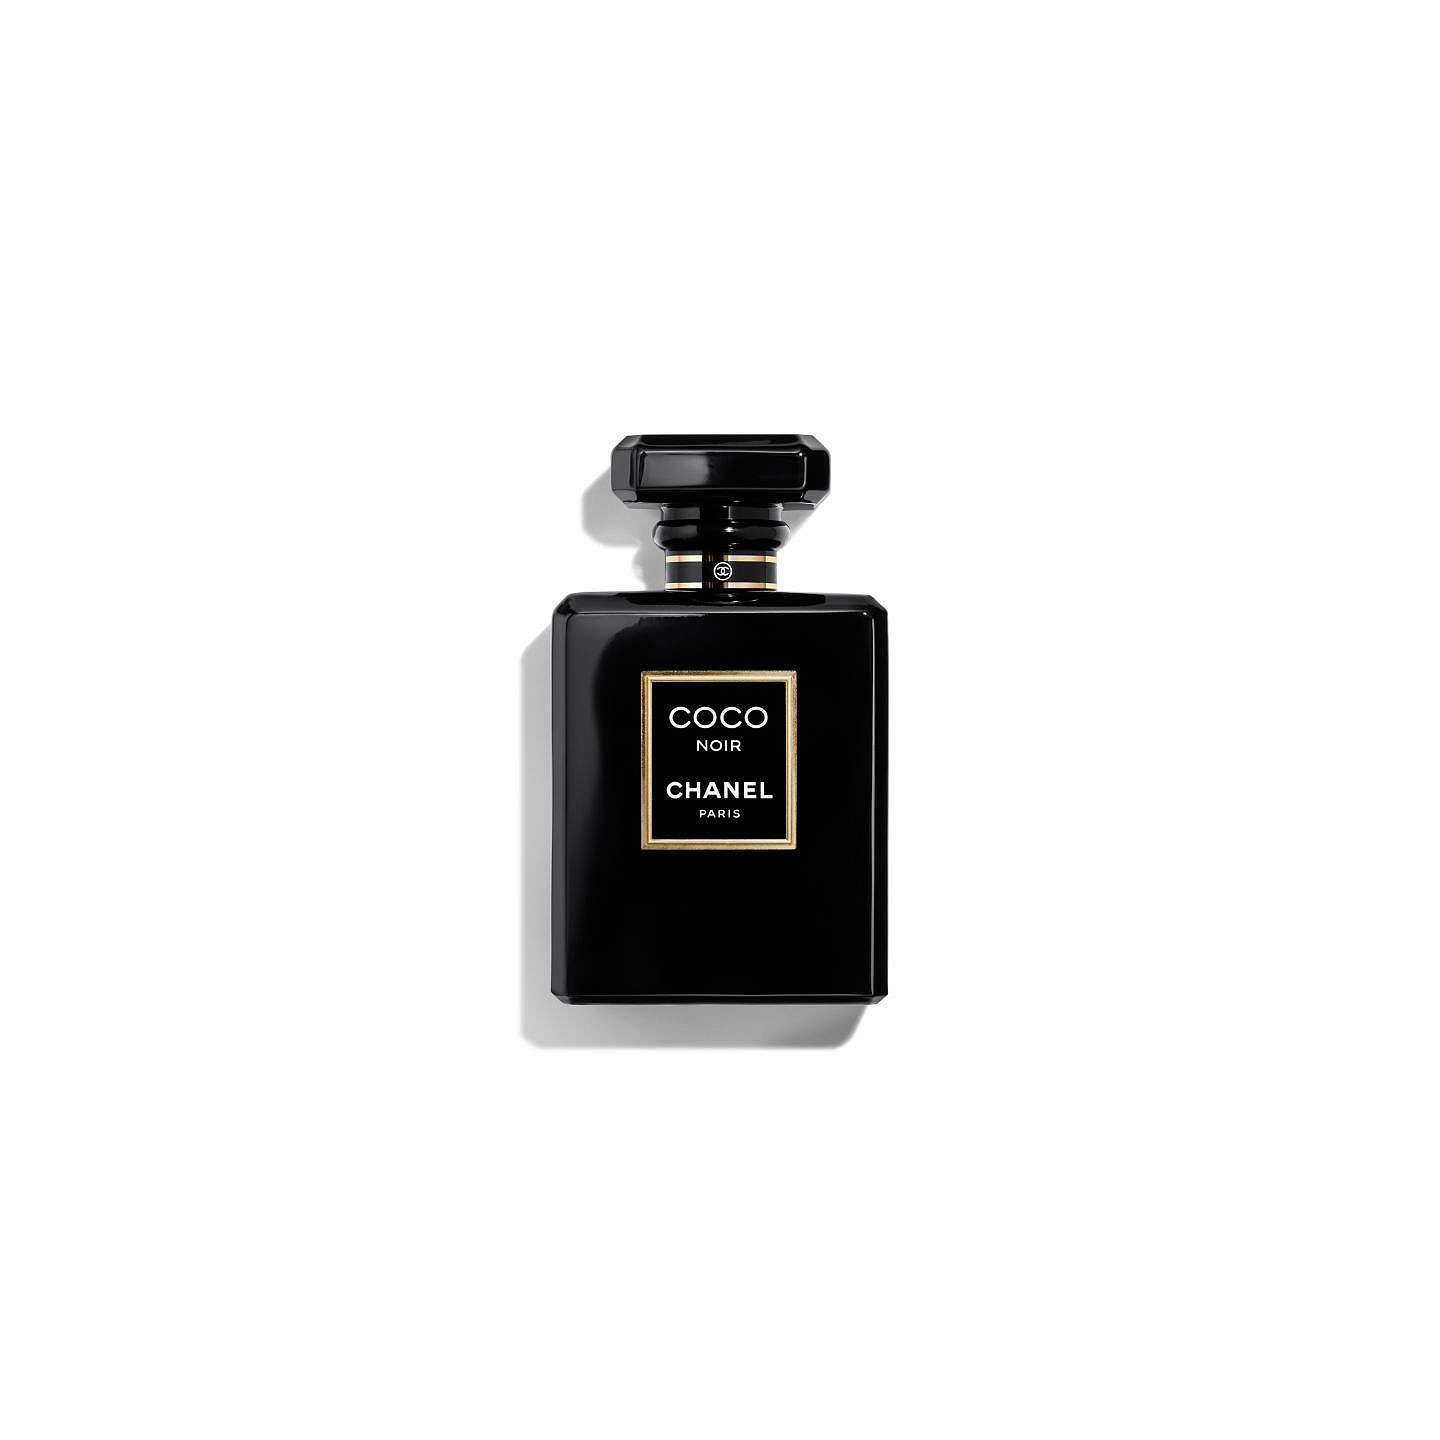 CHANEL COCO NOIR Eau De Parfum Spray at John Lewis